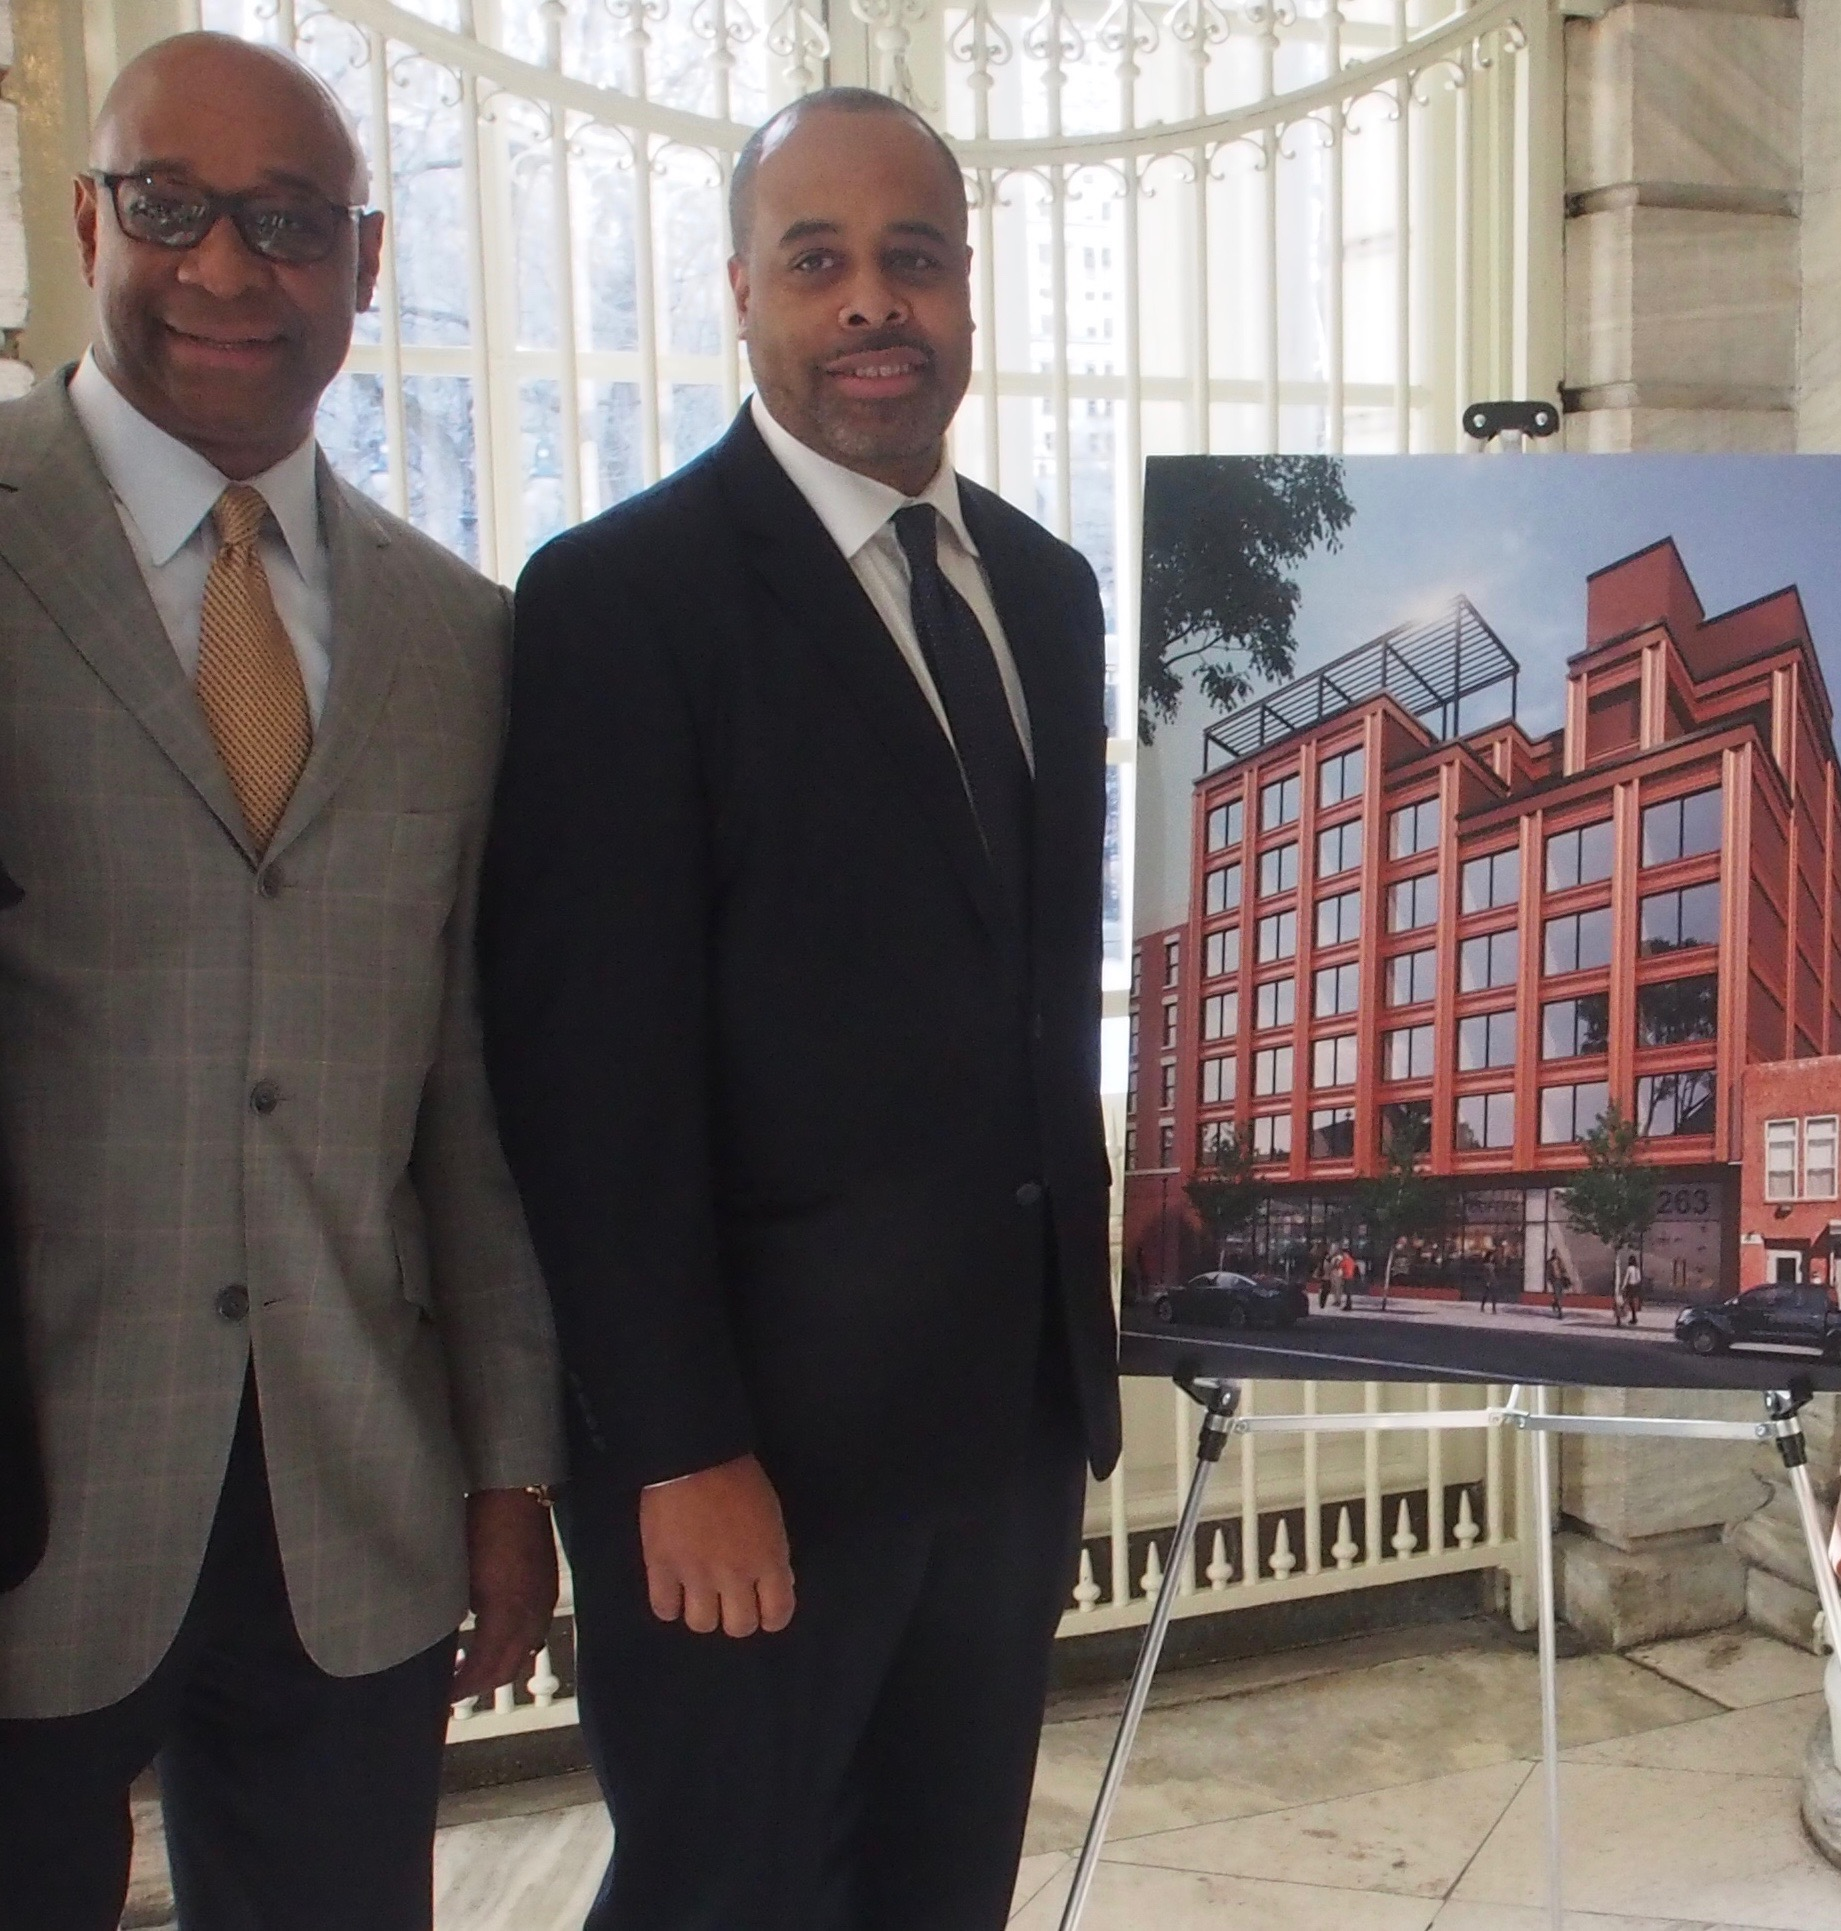 Six Firms Designated as Minority- and Women-owned Business Enterprises  to Build 460 Units of Affordable Housing